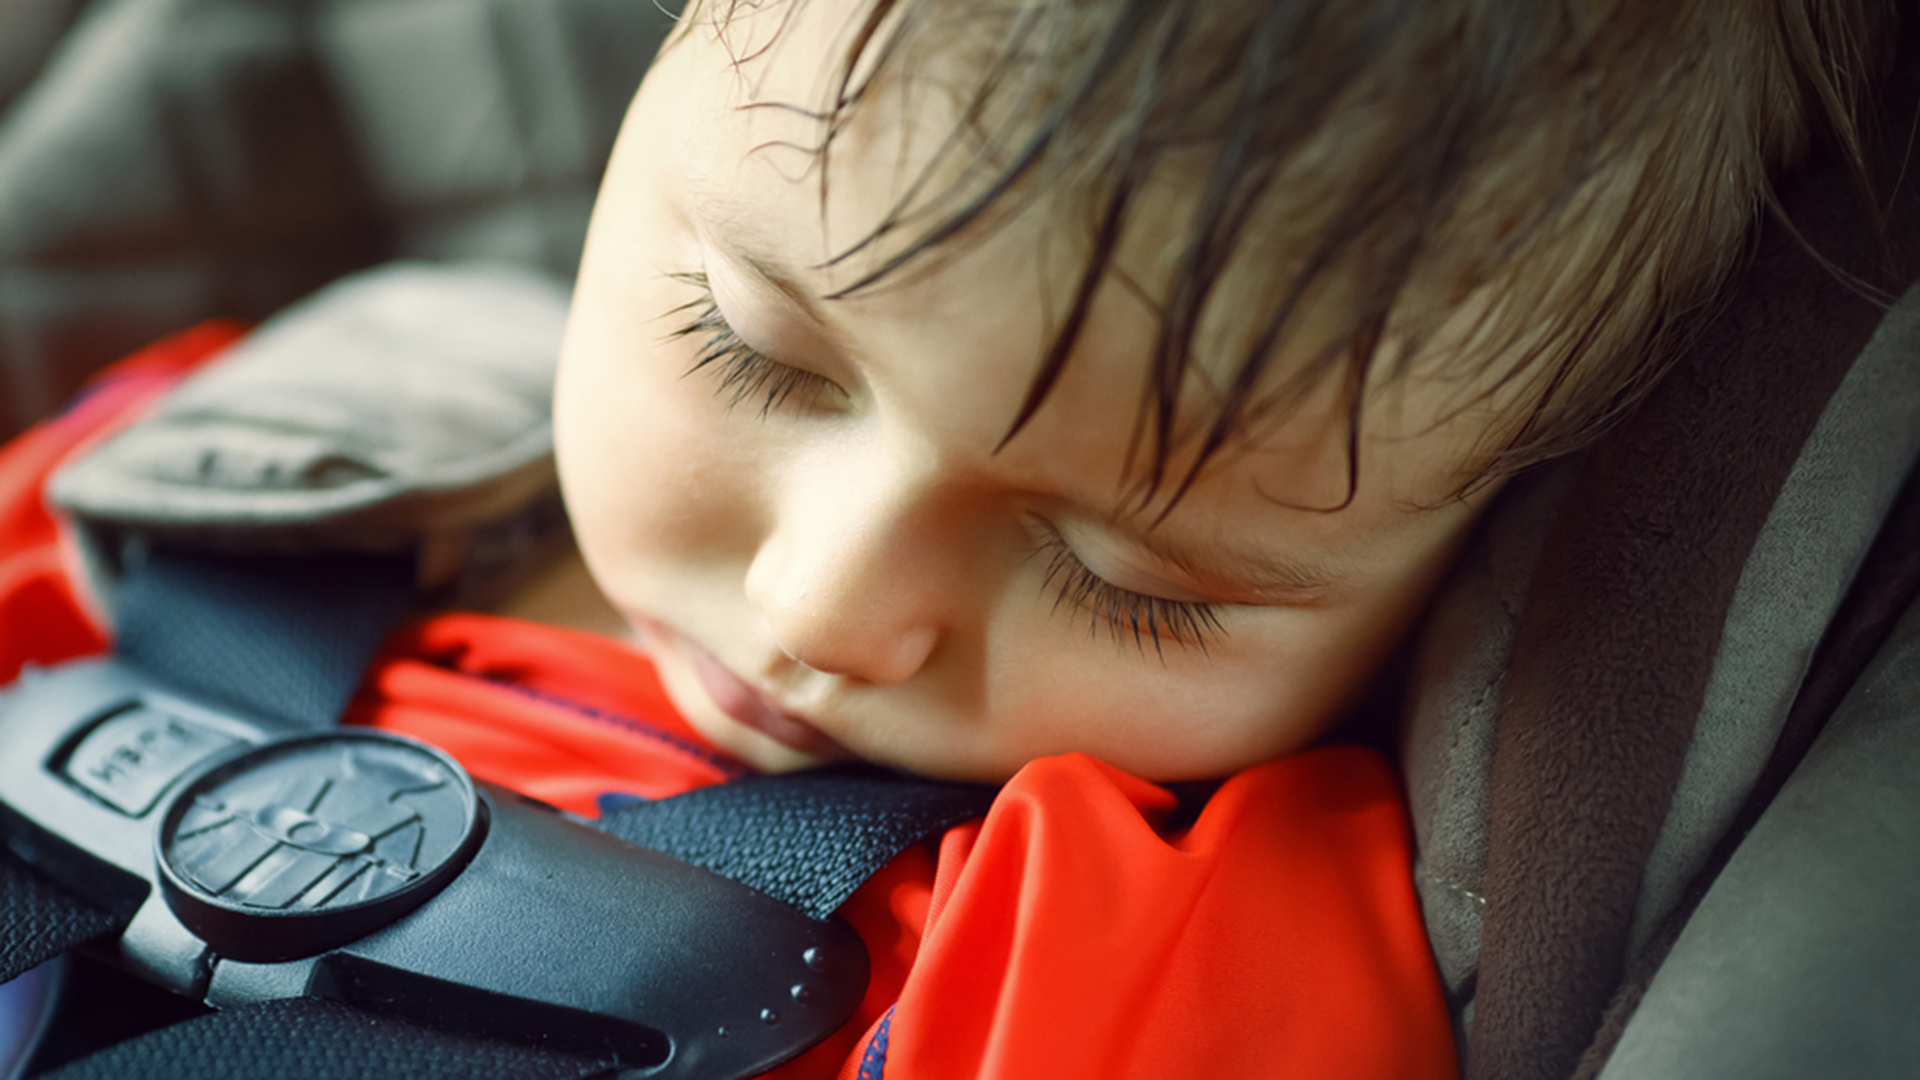 7 Tips For Preventing Hot Car-related Deaths Of Children